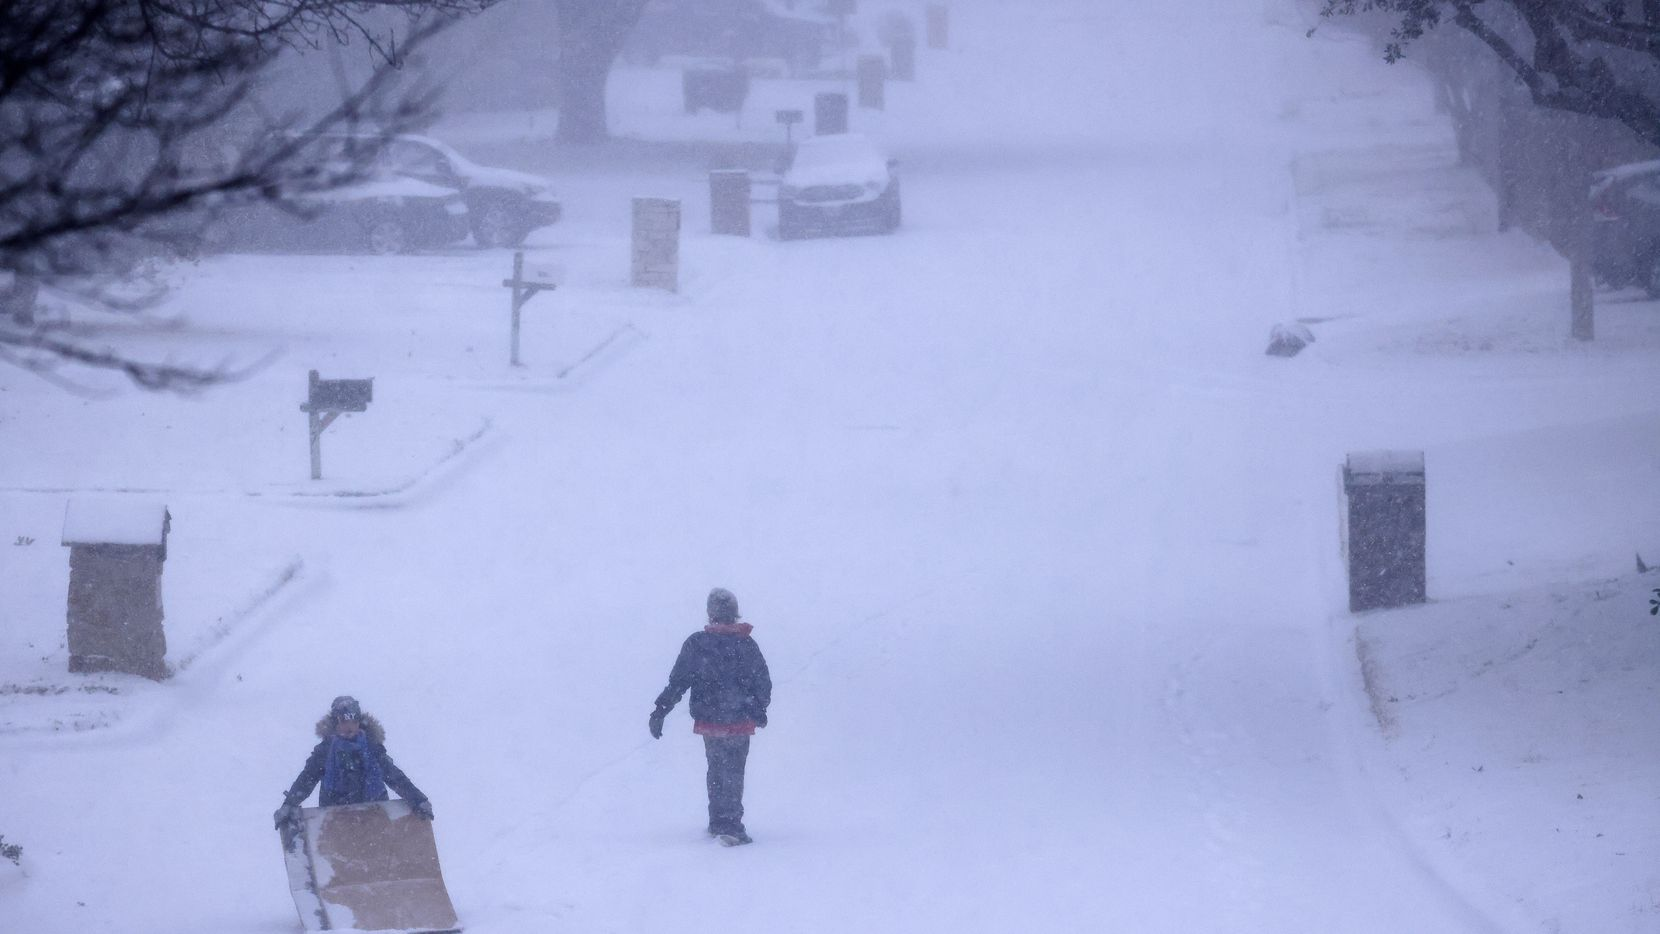 Kids improvised by sledding on large pieces of cardboard down a steep, snow-covered street in North Arlington on Sunday.